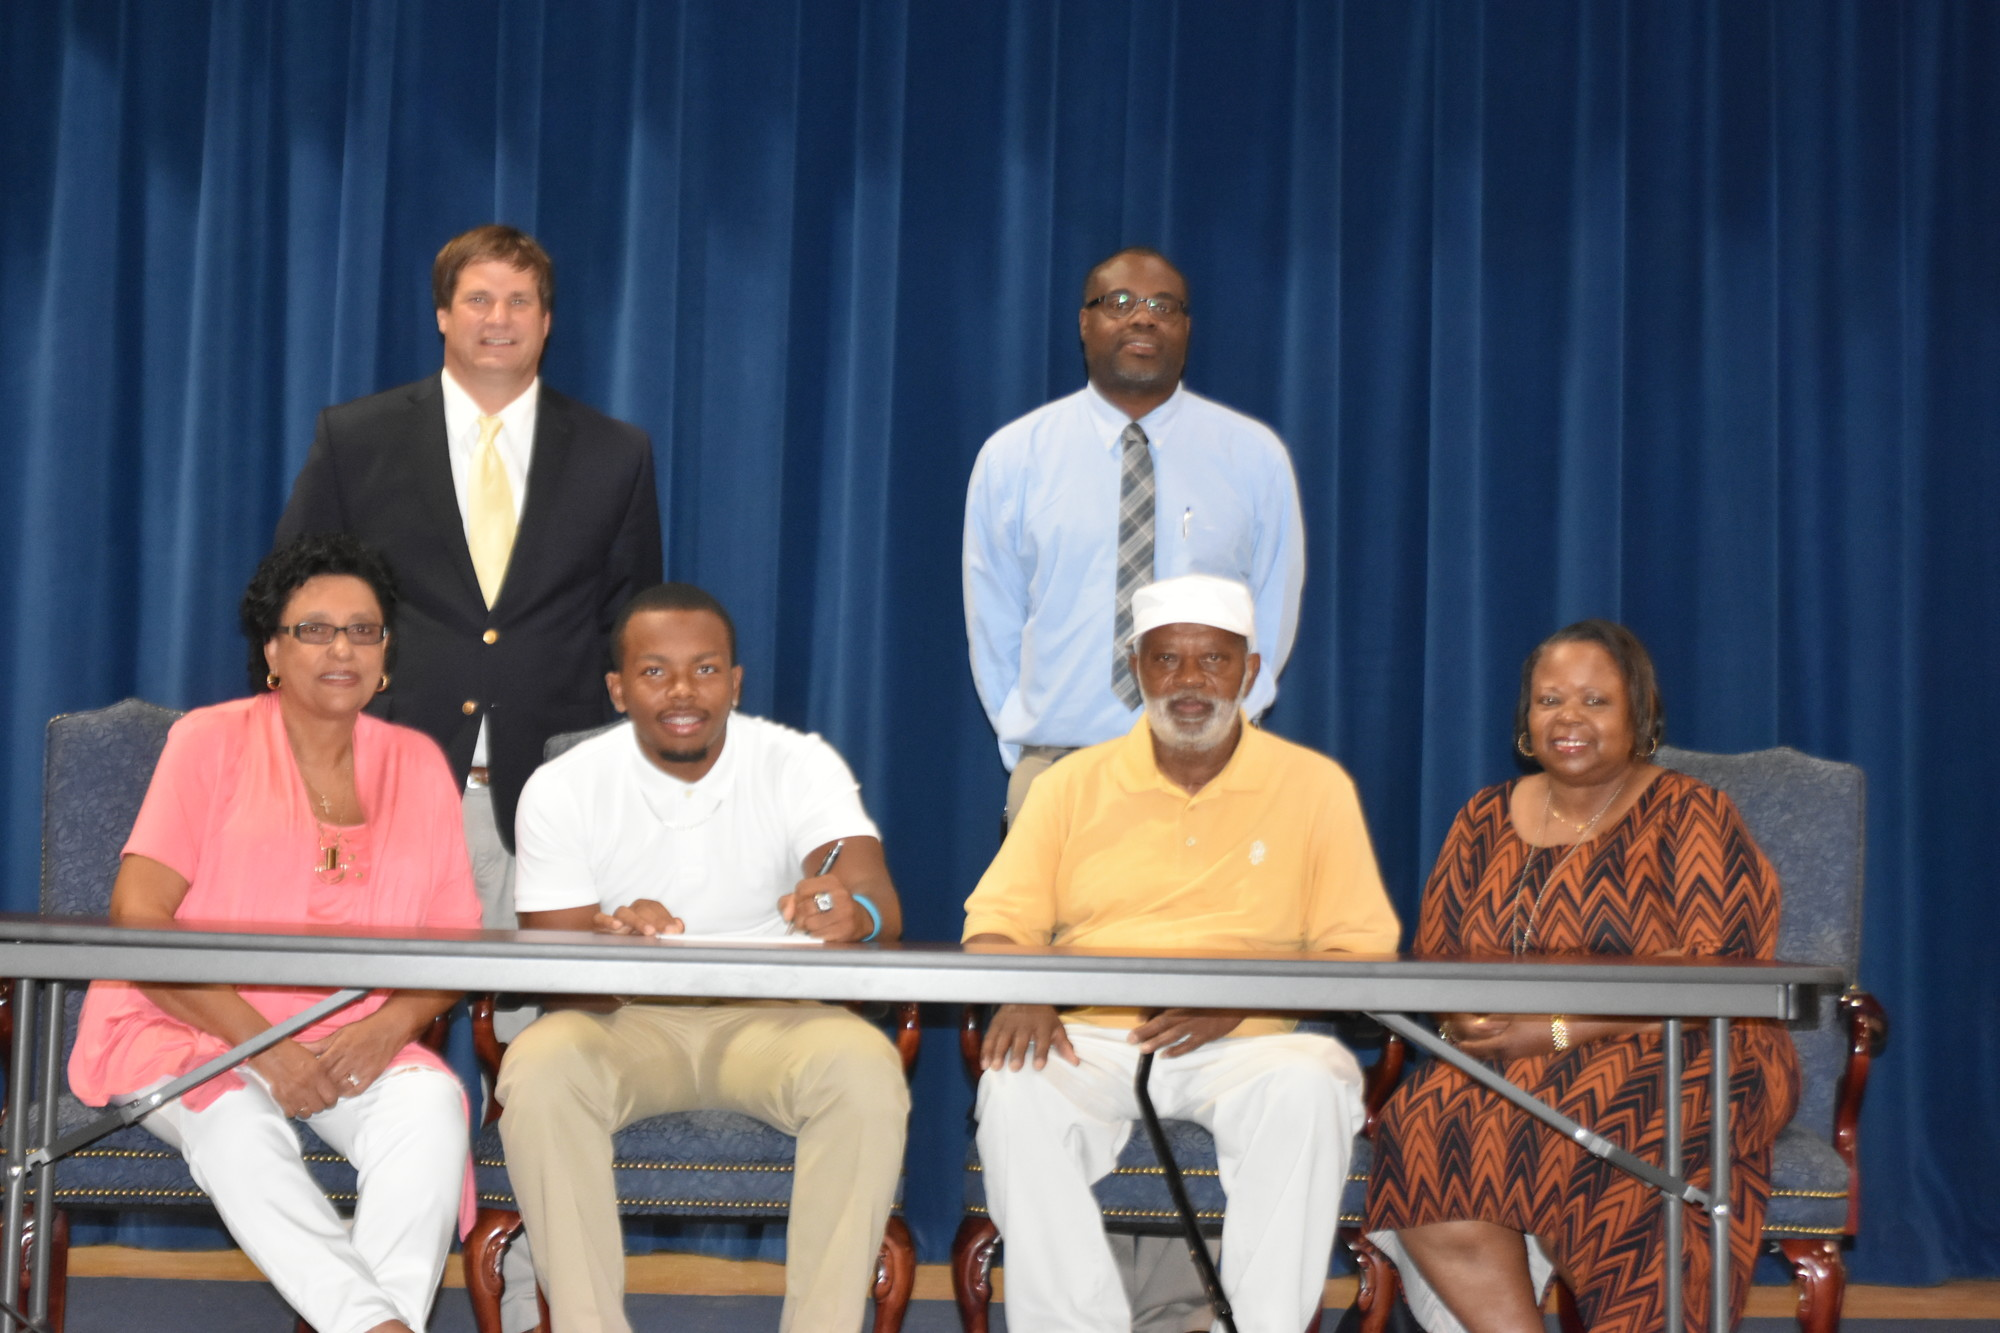 Joshua Pringle of Scott's Branch High School, seated second from the left, has signed with South Carolina State University in Orangeburg to compete in both track and field and football. Seated with Pringle, from left to right, are mother Judy, father Joshua Sr. and aunt Patricia. Standing are Scott's Branch athletic director and football head coach Brian Smith and track and field head coach Kevin Miller.